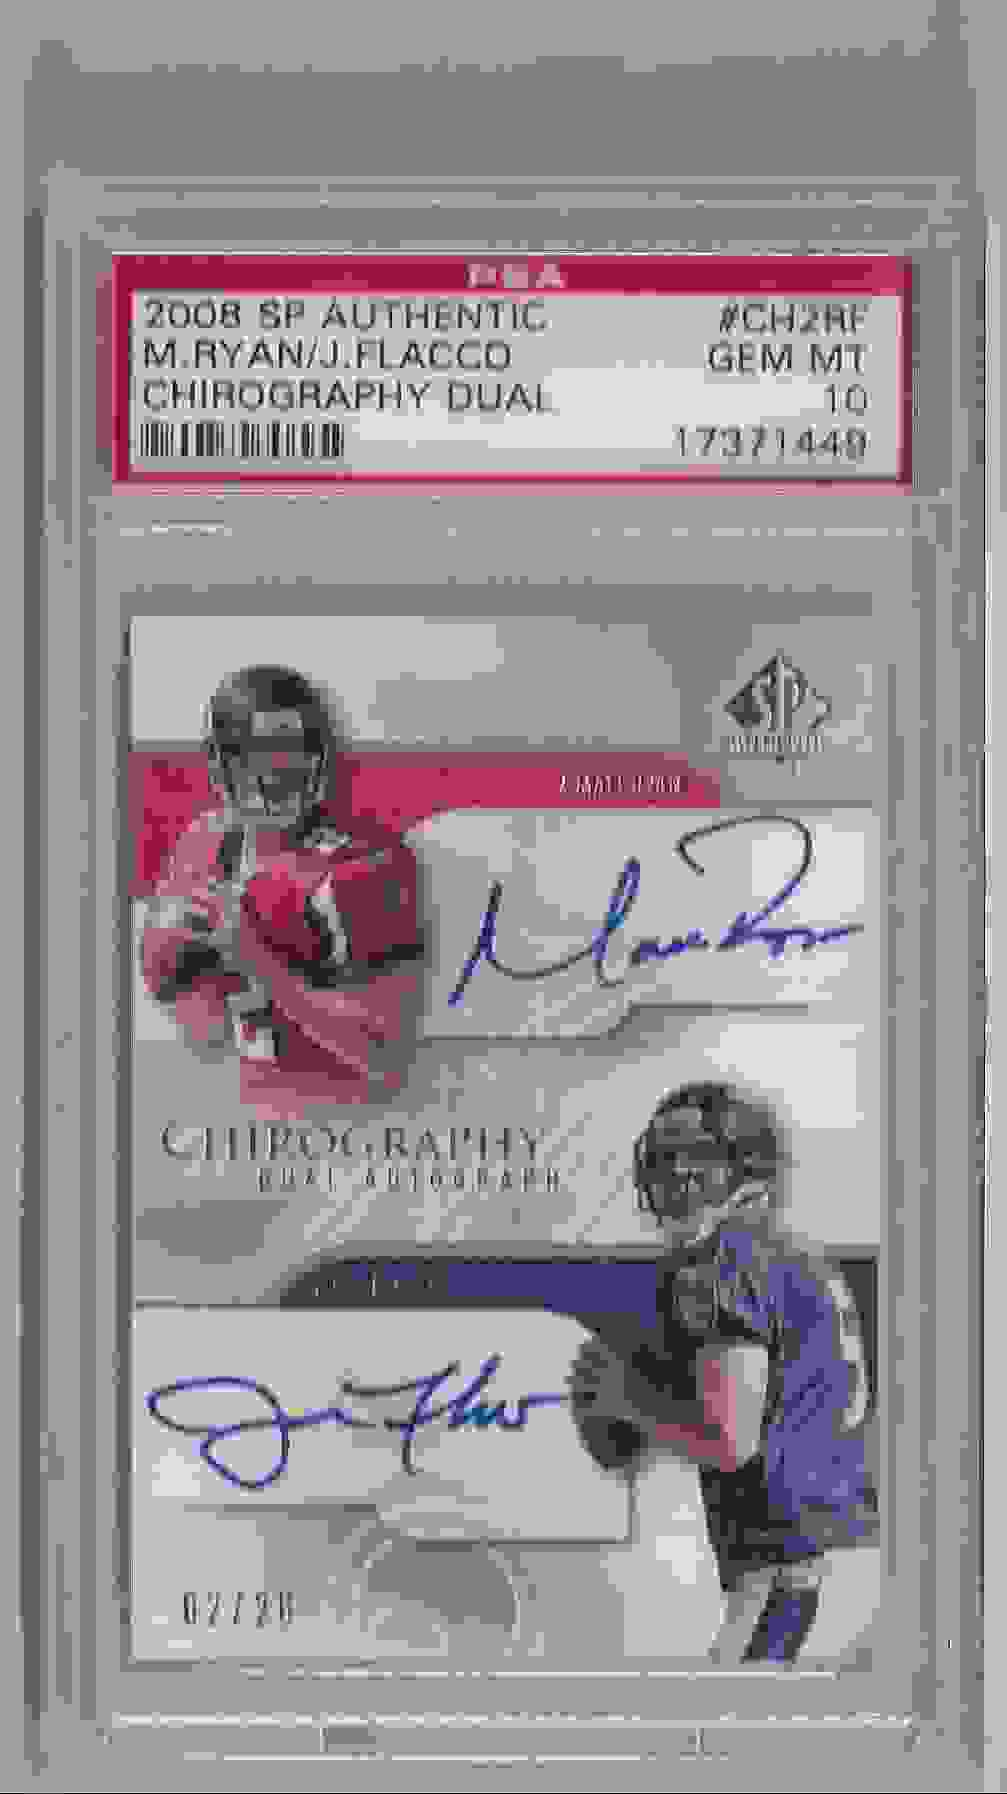 2008 SP Authentic Chirography Dual Matt Ryan/Joe Flacco #CH2-RF card front image